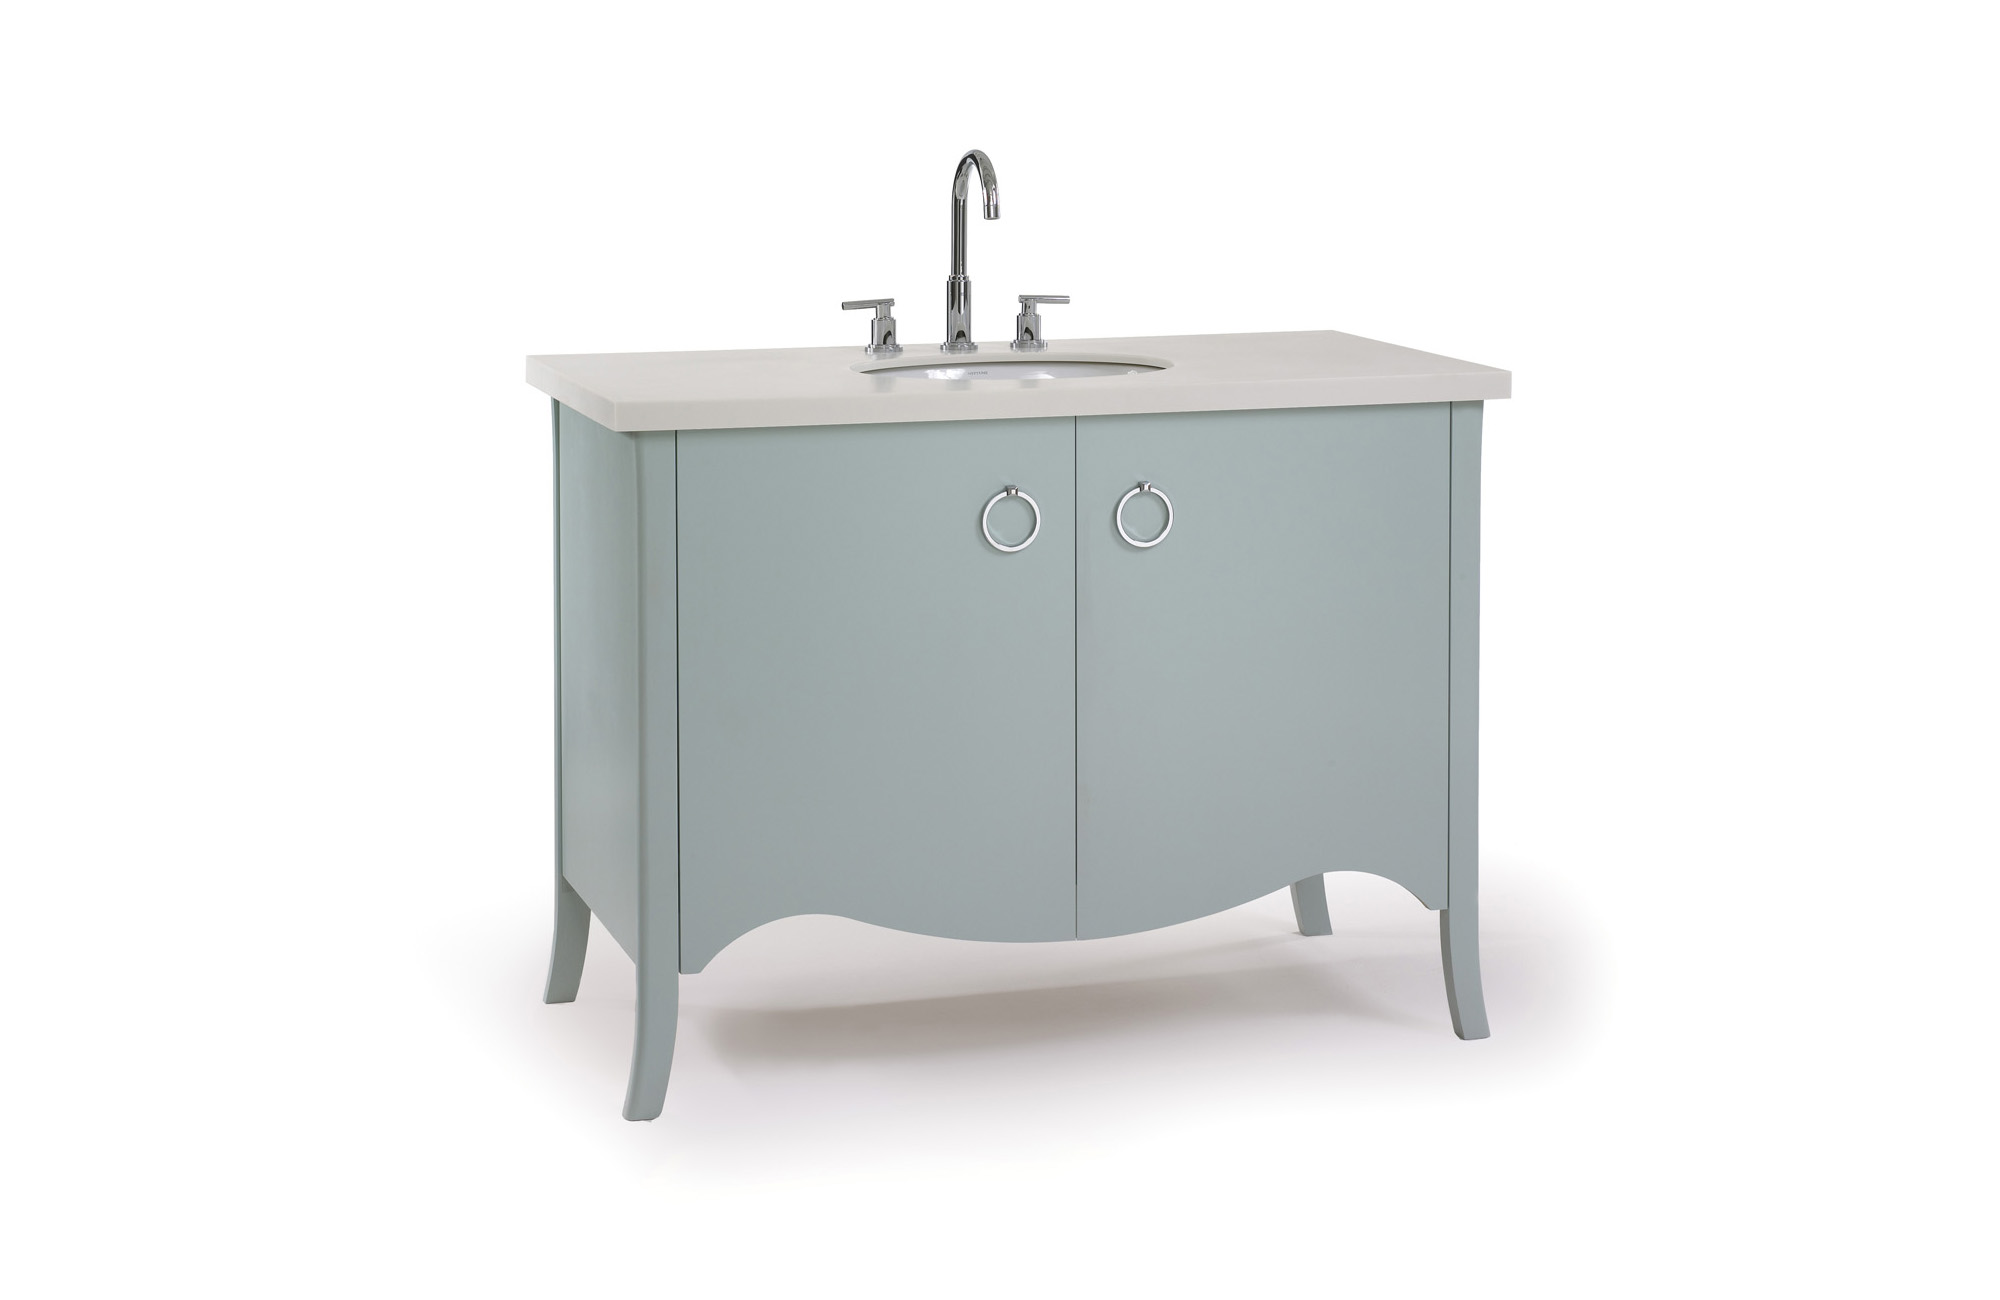 Best Bath Hardware and Fixtures Images Onhardware